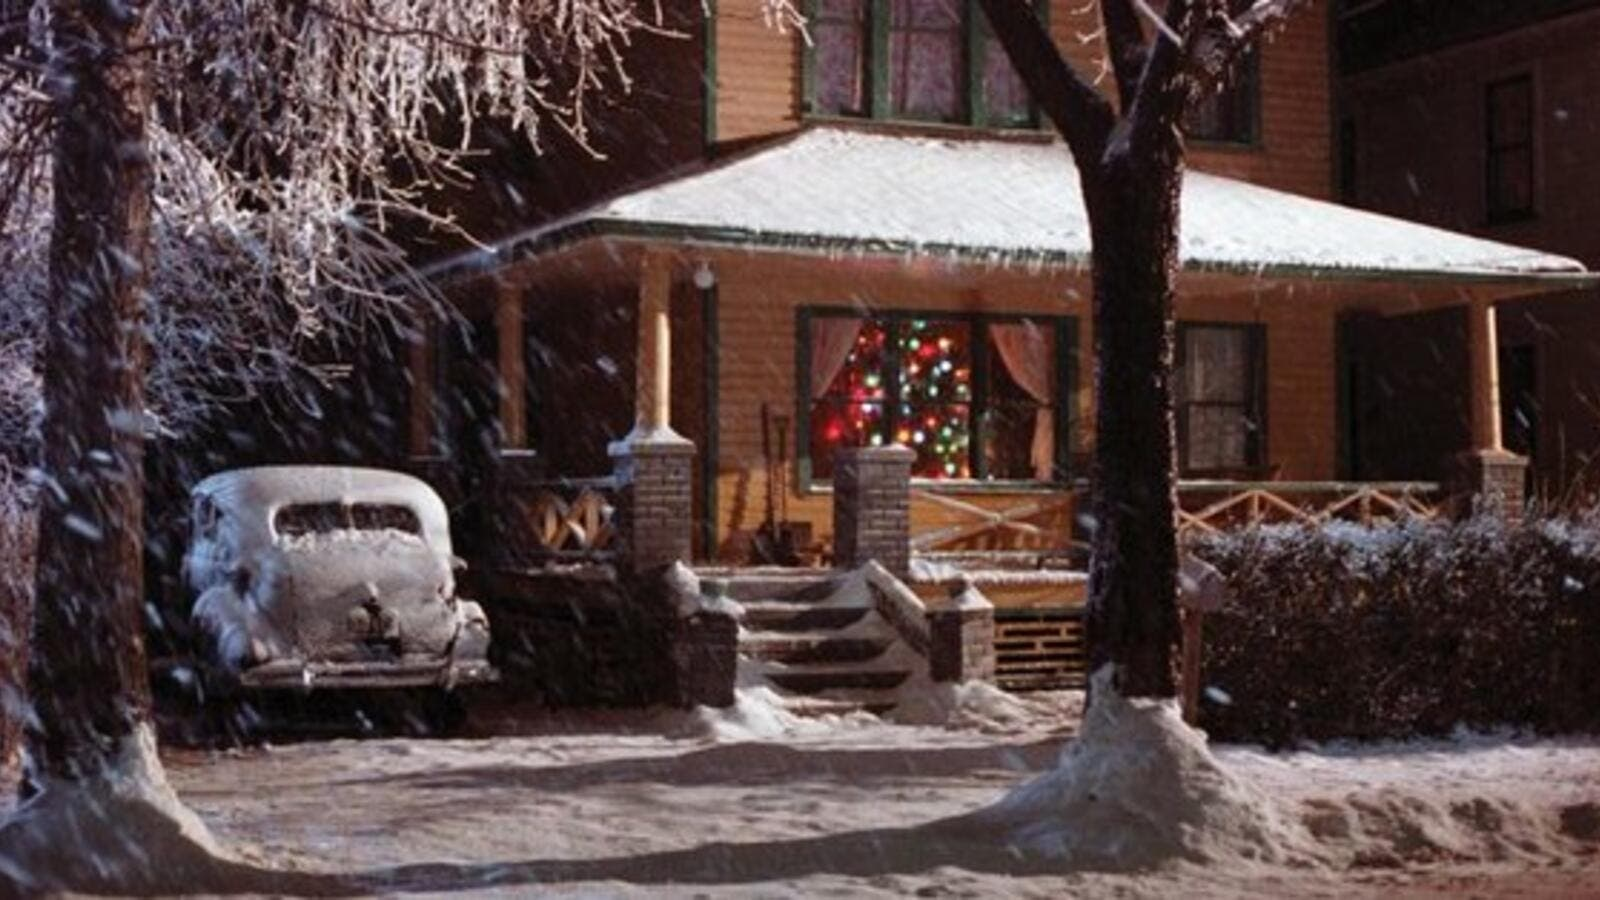 'A Christmas Story' was filmed in Cleveland, and the house the protagonist lives in was converted into a museum dedicated to the film (Twitter)